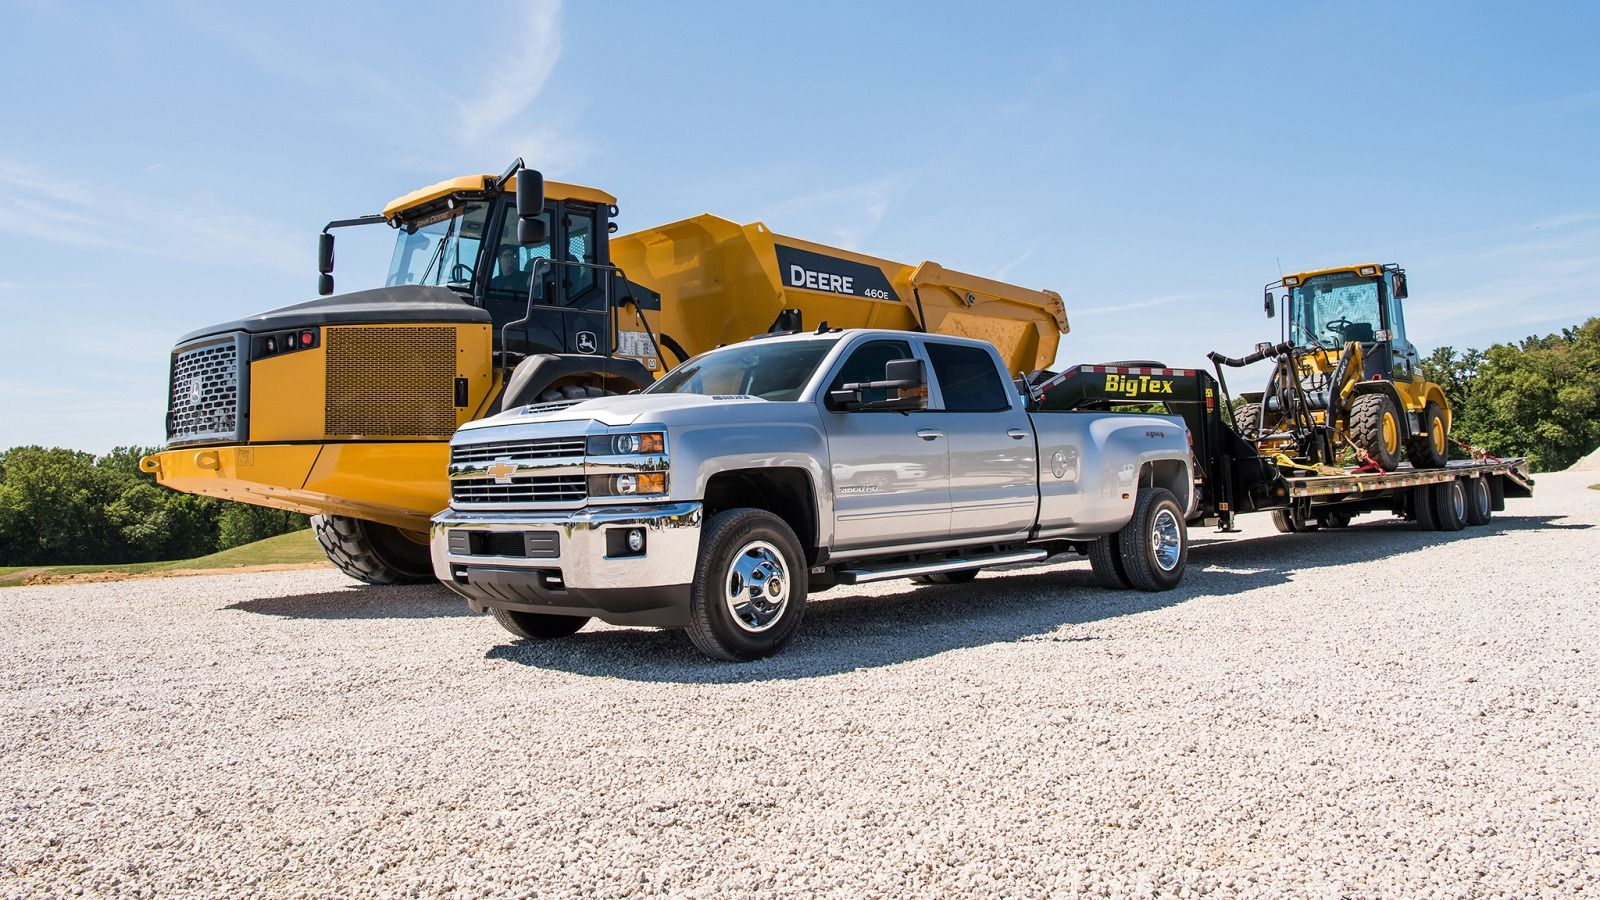 2018 Chevy Silverado 3500hd Wort Truck For Sale By Chevrolet